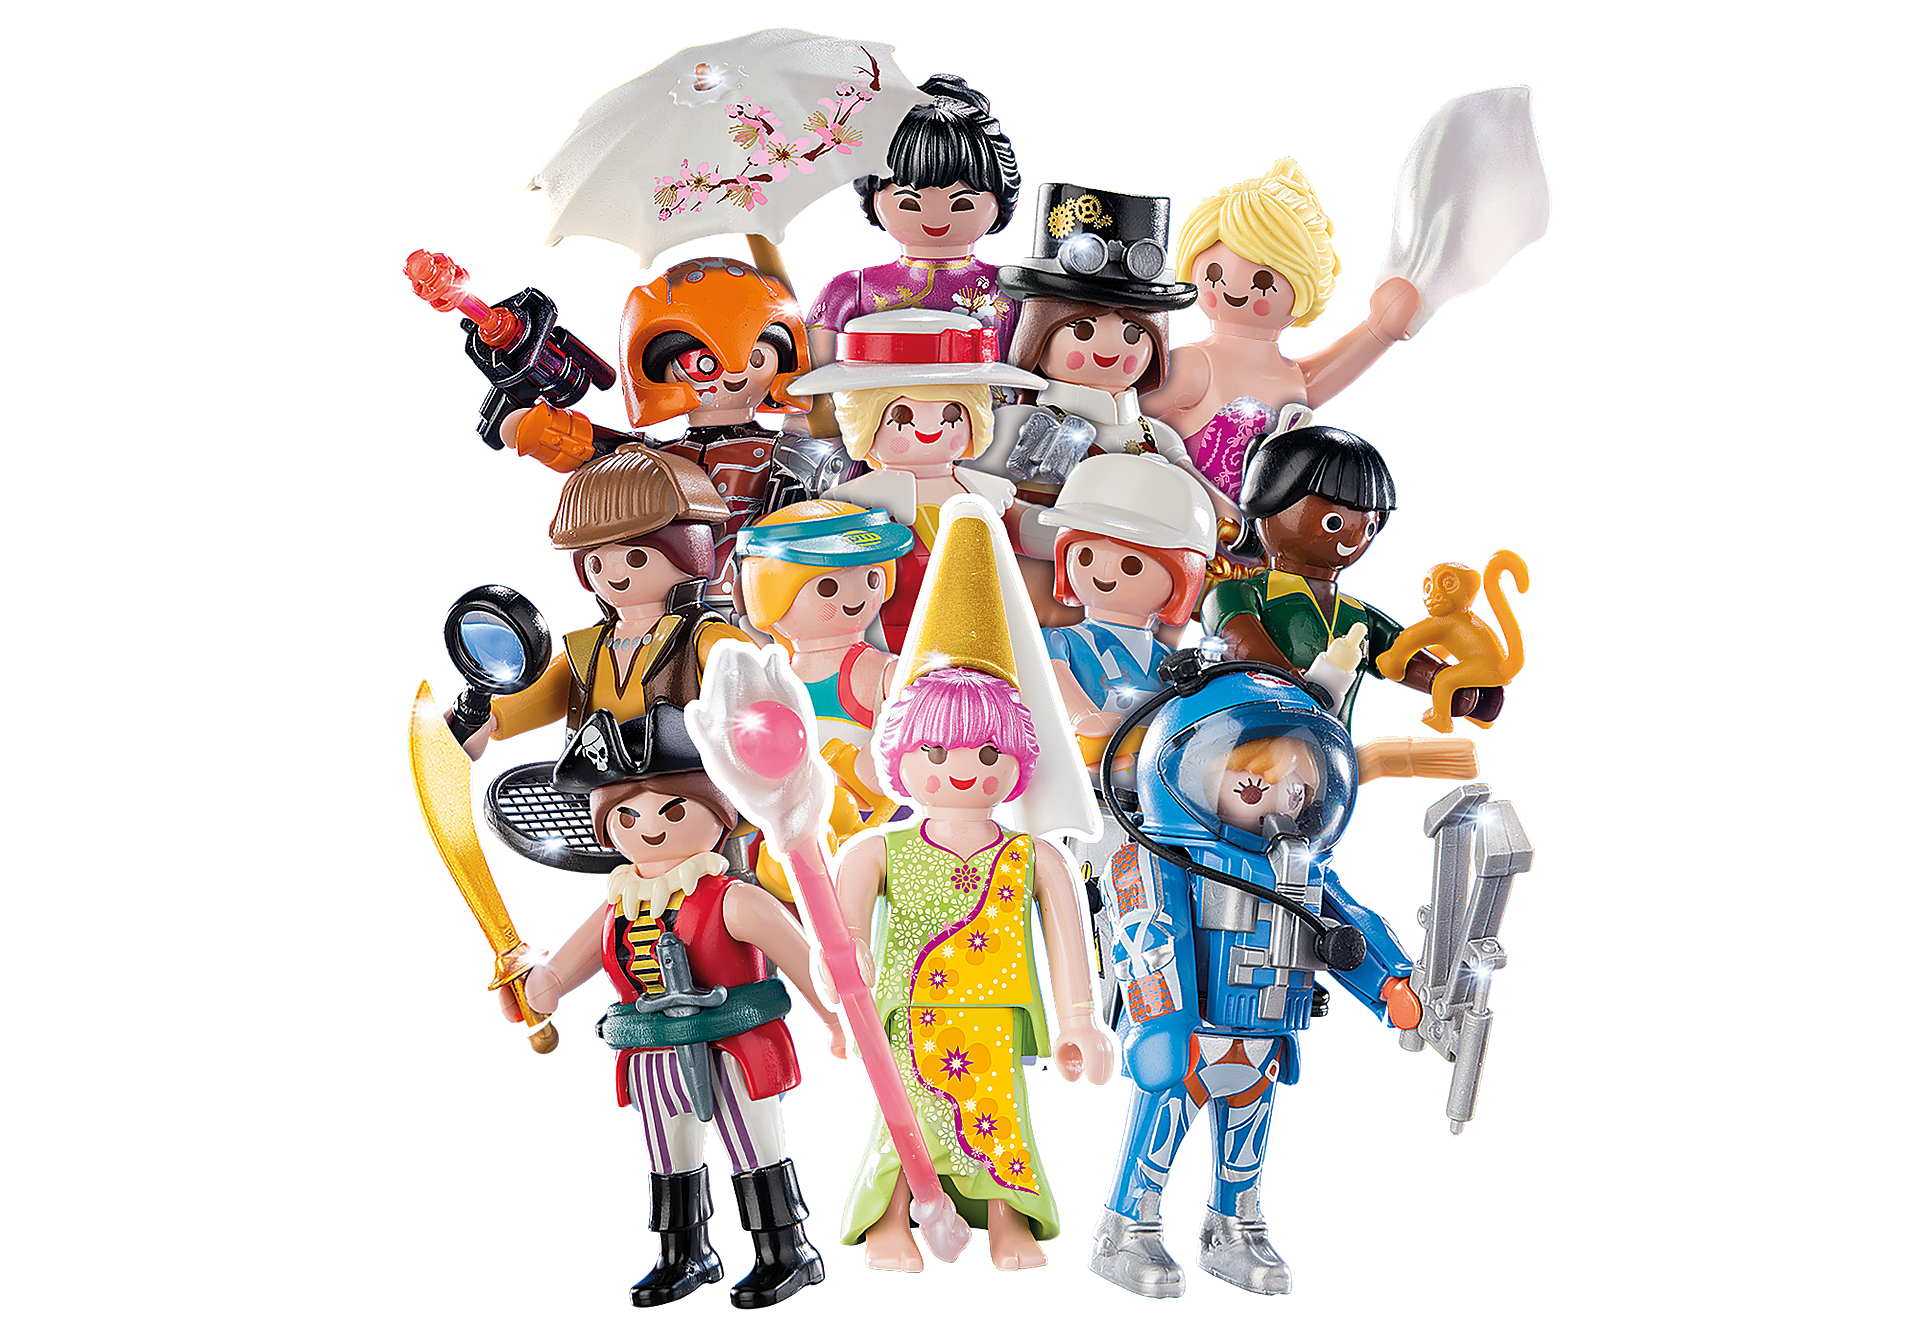 70160 PLAYMOBIL-Figures Girls (S16) zoom image1